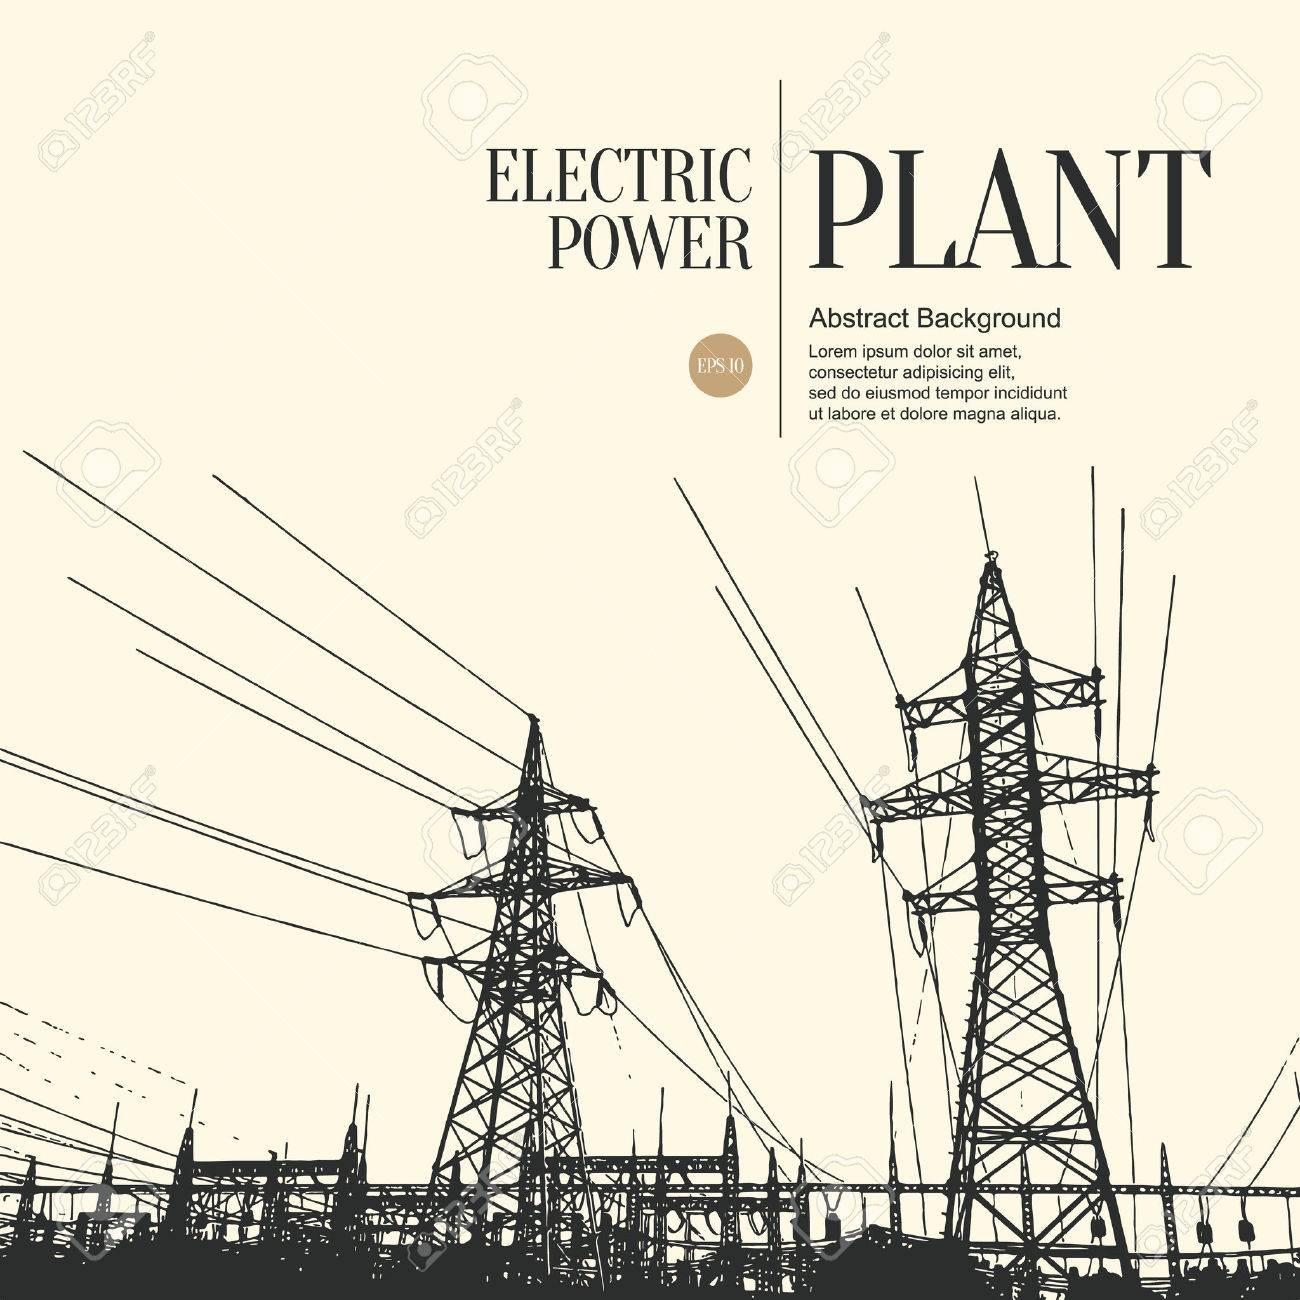 Abstract sketch stylized background  Electric power plant